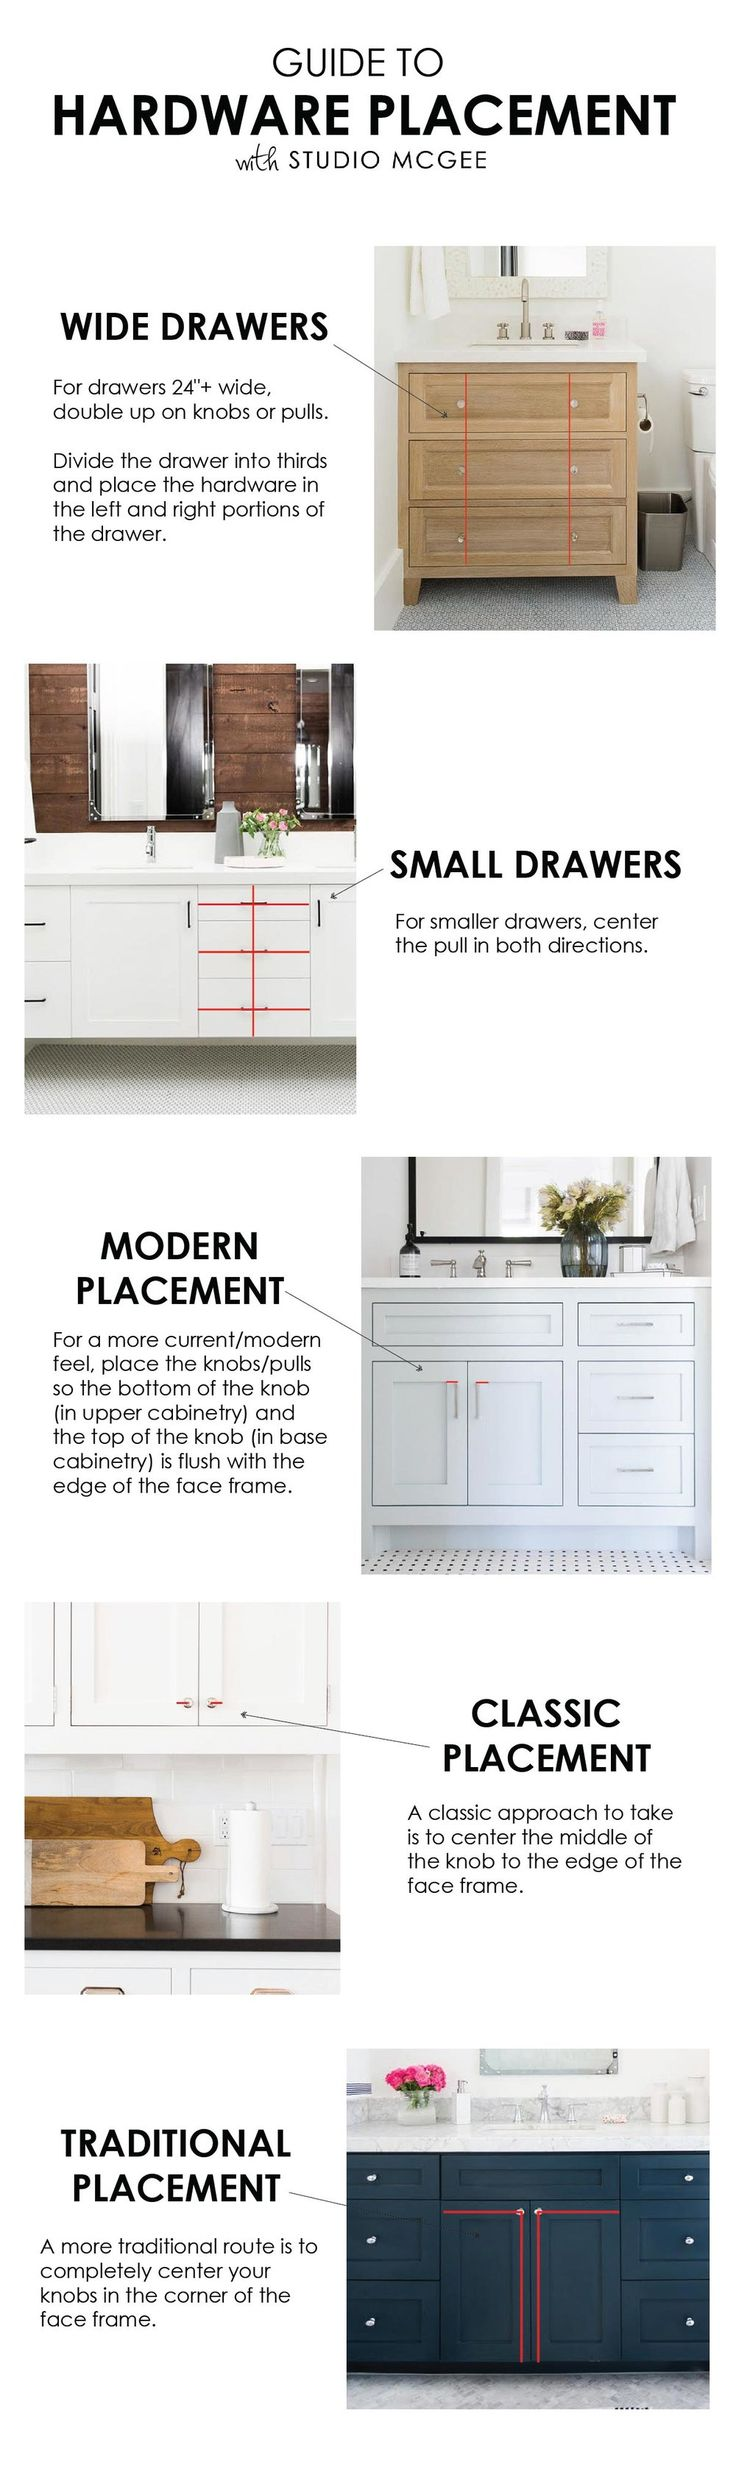 Guide to Hardware Placement. 258 best Furniture    Hardware images on Pinterest   Dining table